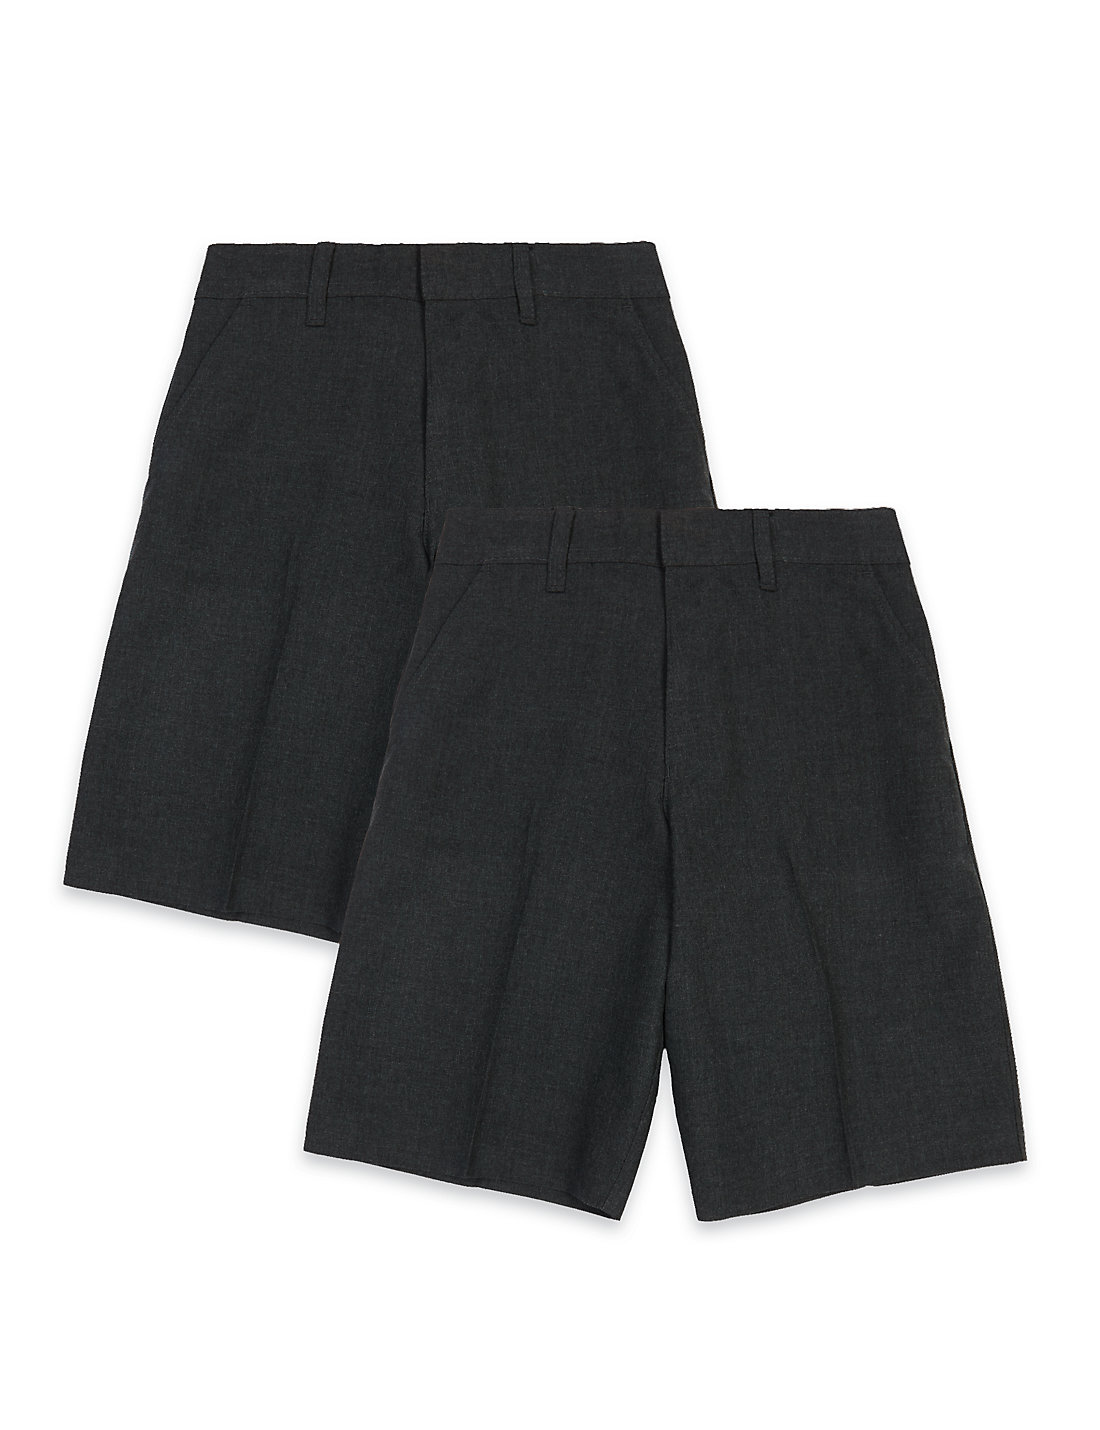 Buy your Boys School Shorts online at School Uniform Great Quality Elasticated School Shorts with pleats in a choice of slim, standard, generous fit and cargo styles. Available in Grey, Navy Blue, Black & Brown colours. We supply schools.